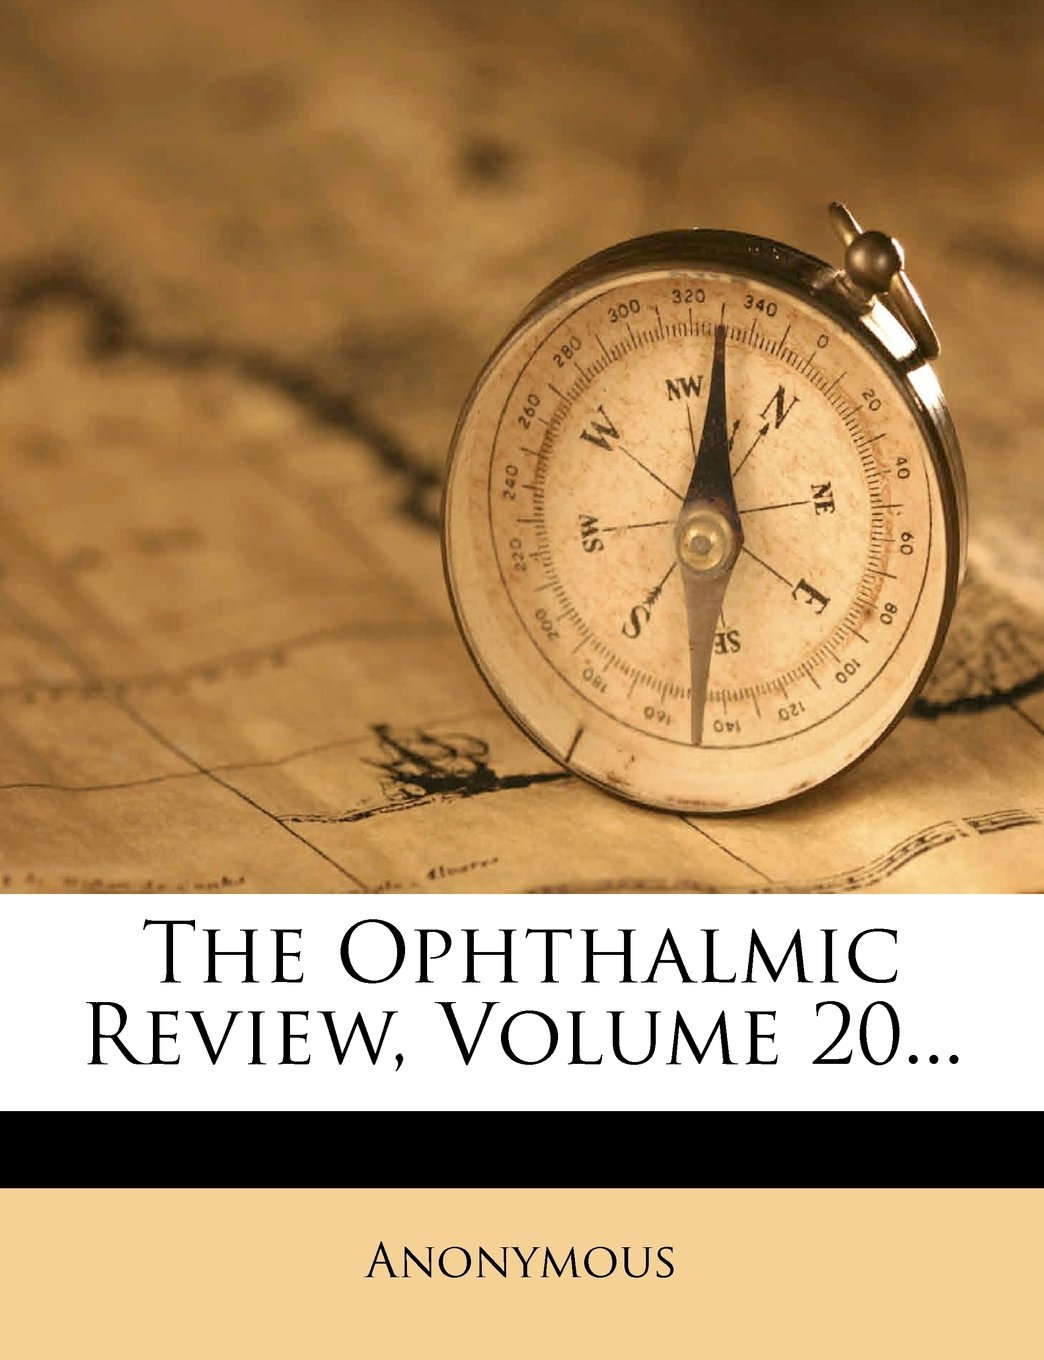 The Ophthalmic Review, Volume 20... ebook